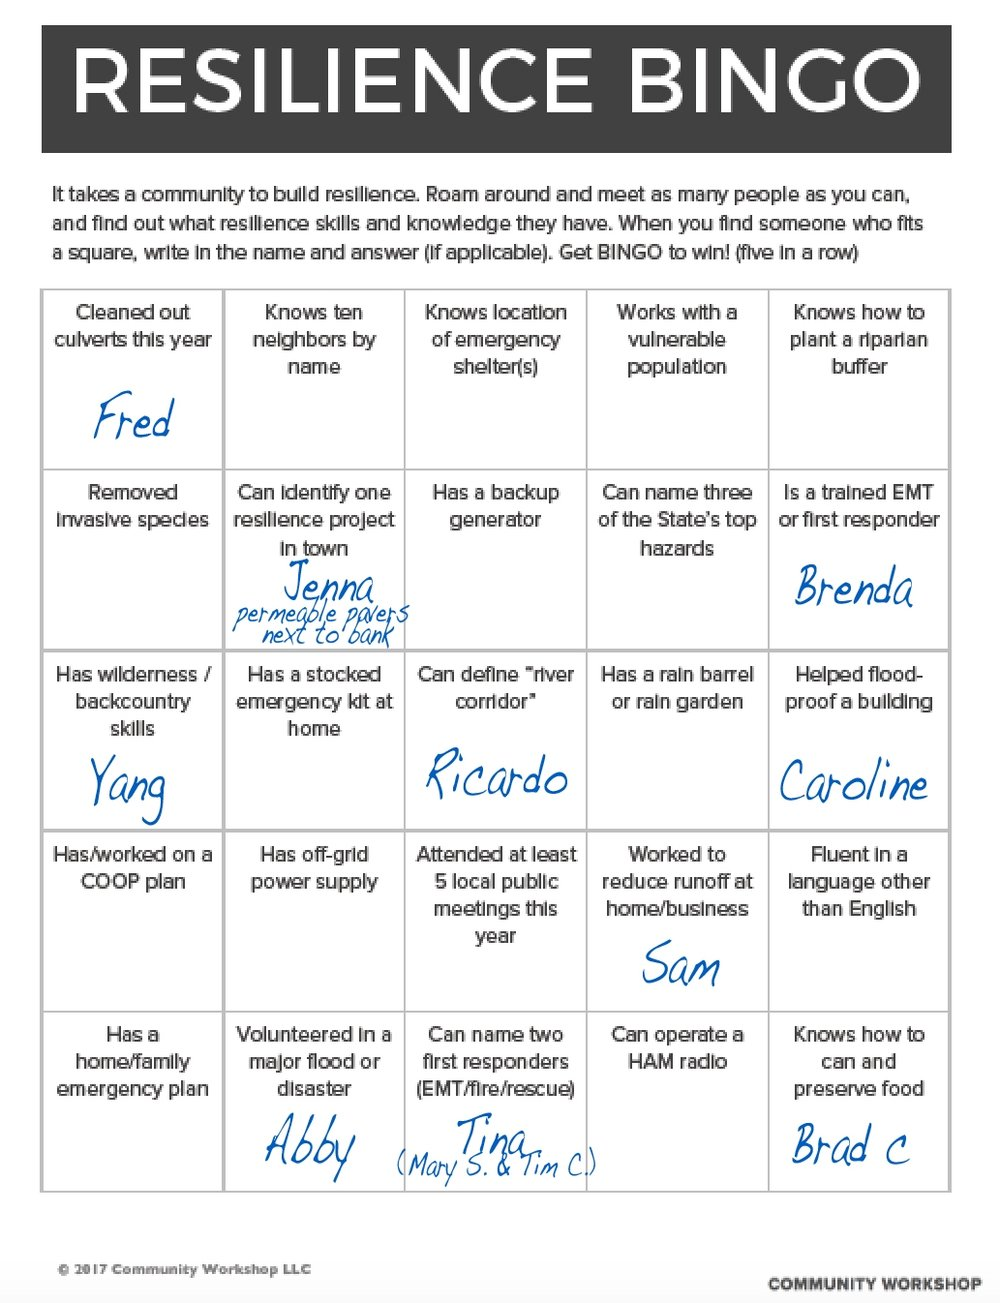 Resilience Bingo was created by community workshop LLc.  DOWNLOAD FOR FREE!